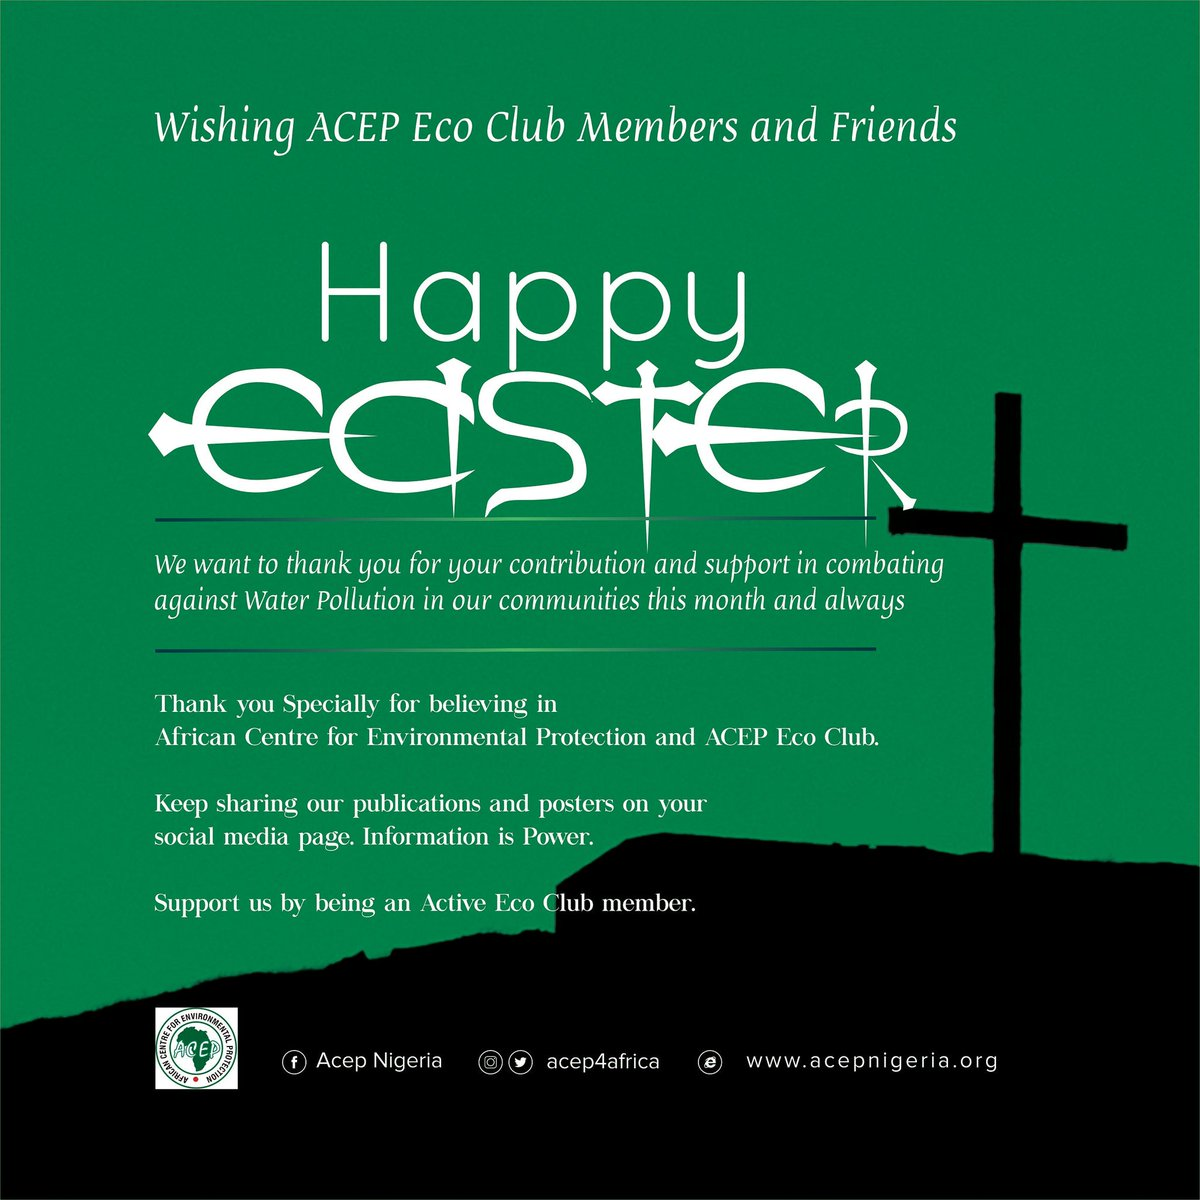 He is risen...  Happy Easter!   #Acep4africa #Deforestation #Habitat #Energy #Beatplasticpollution #Pollution #revolution #wastemanagment #environment #climate #recycling